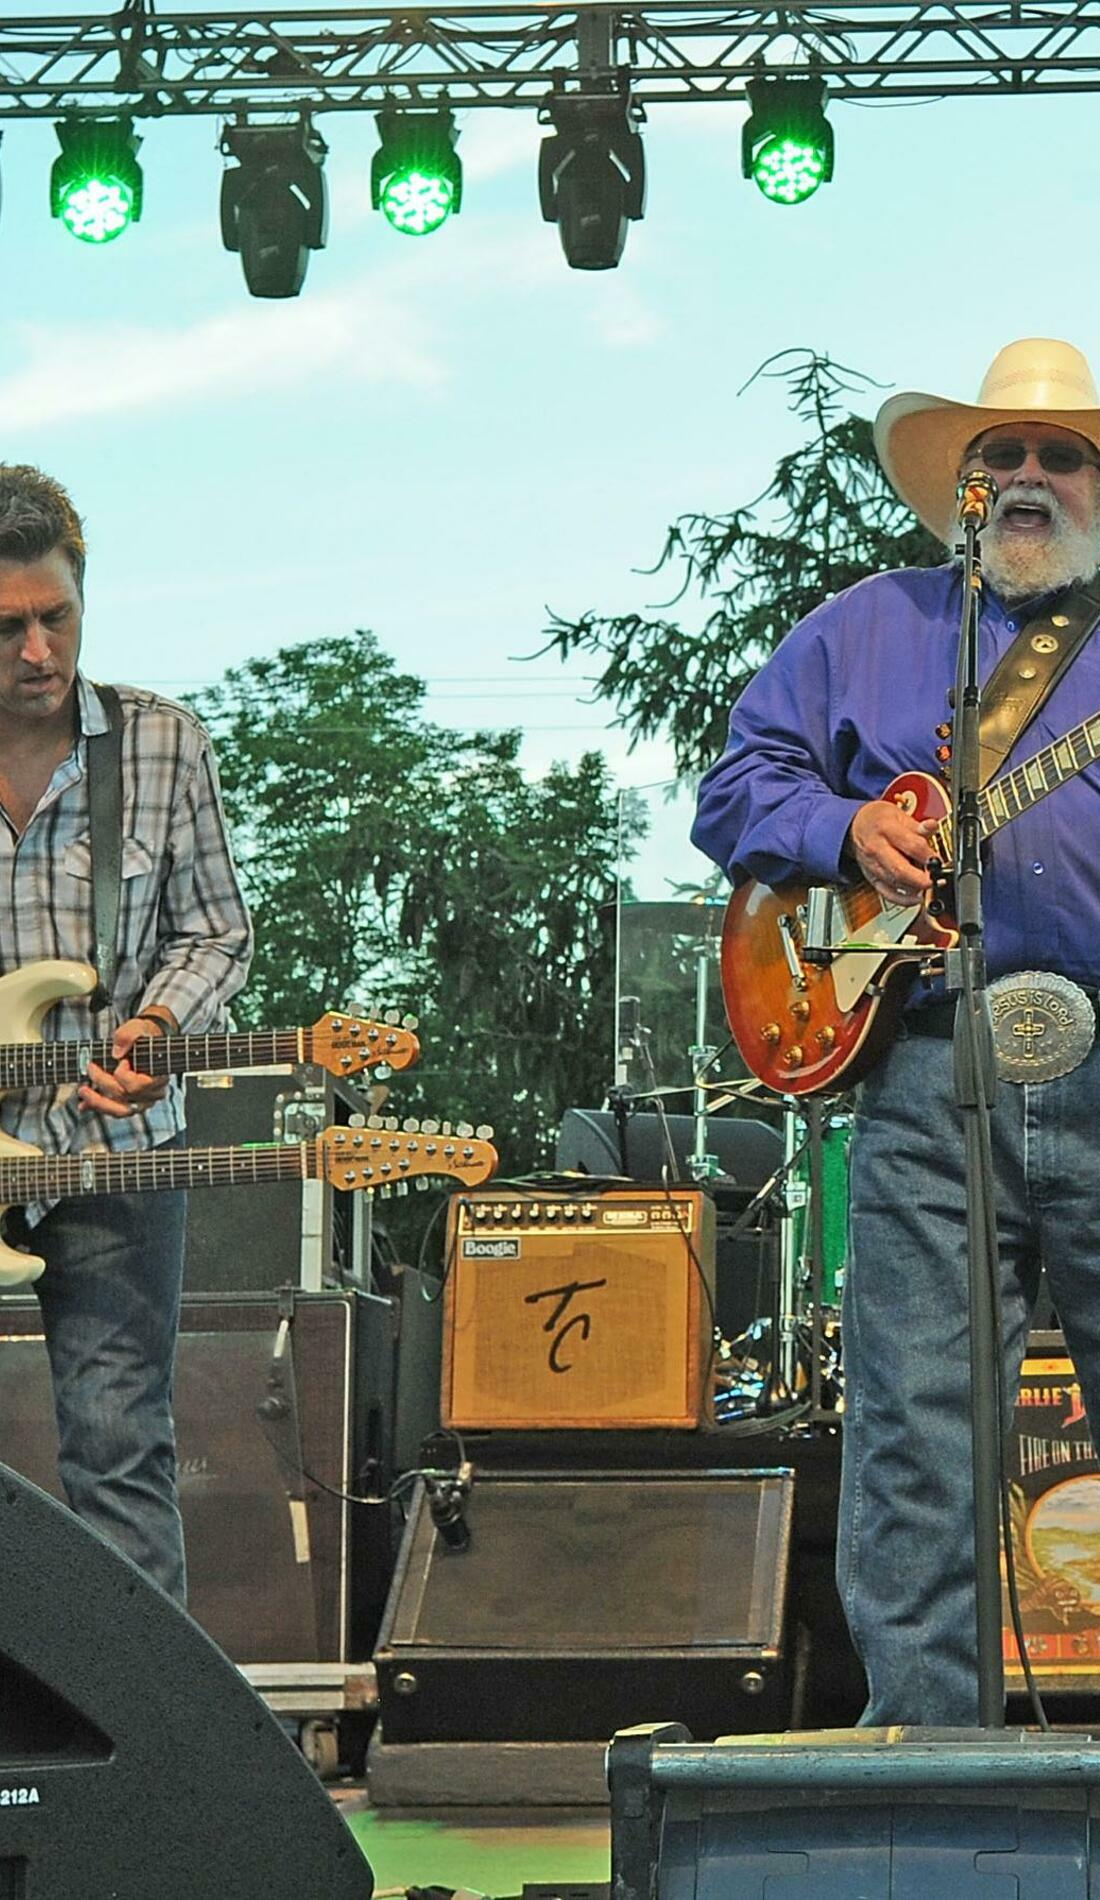 A The Charlie Daniels Band live event